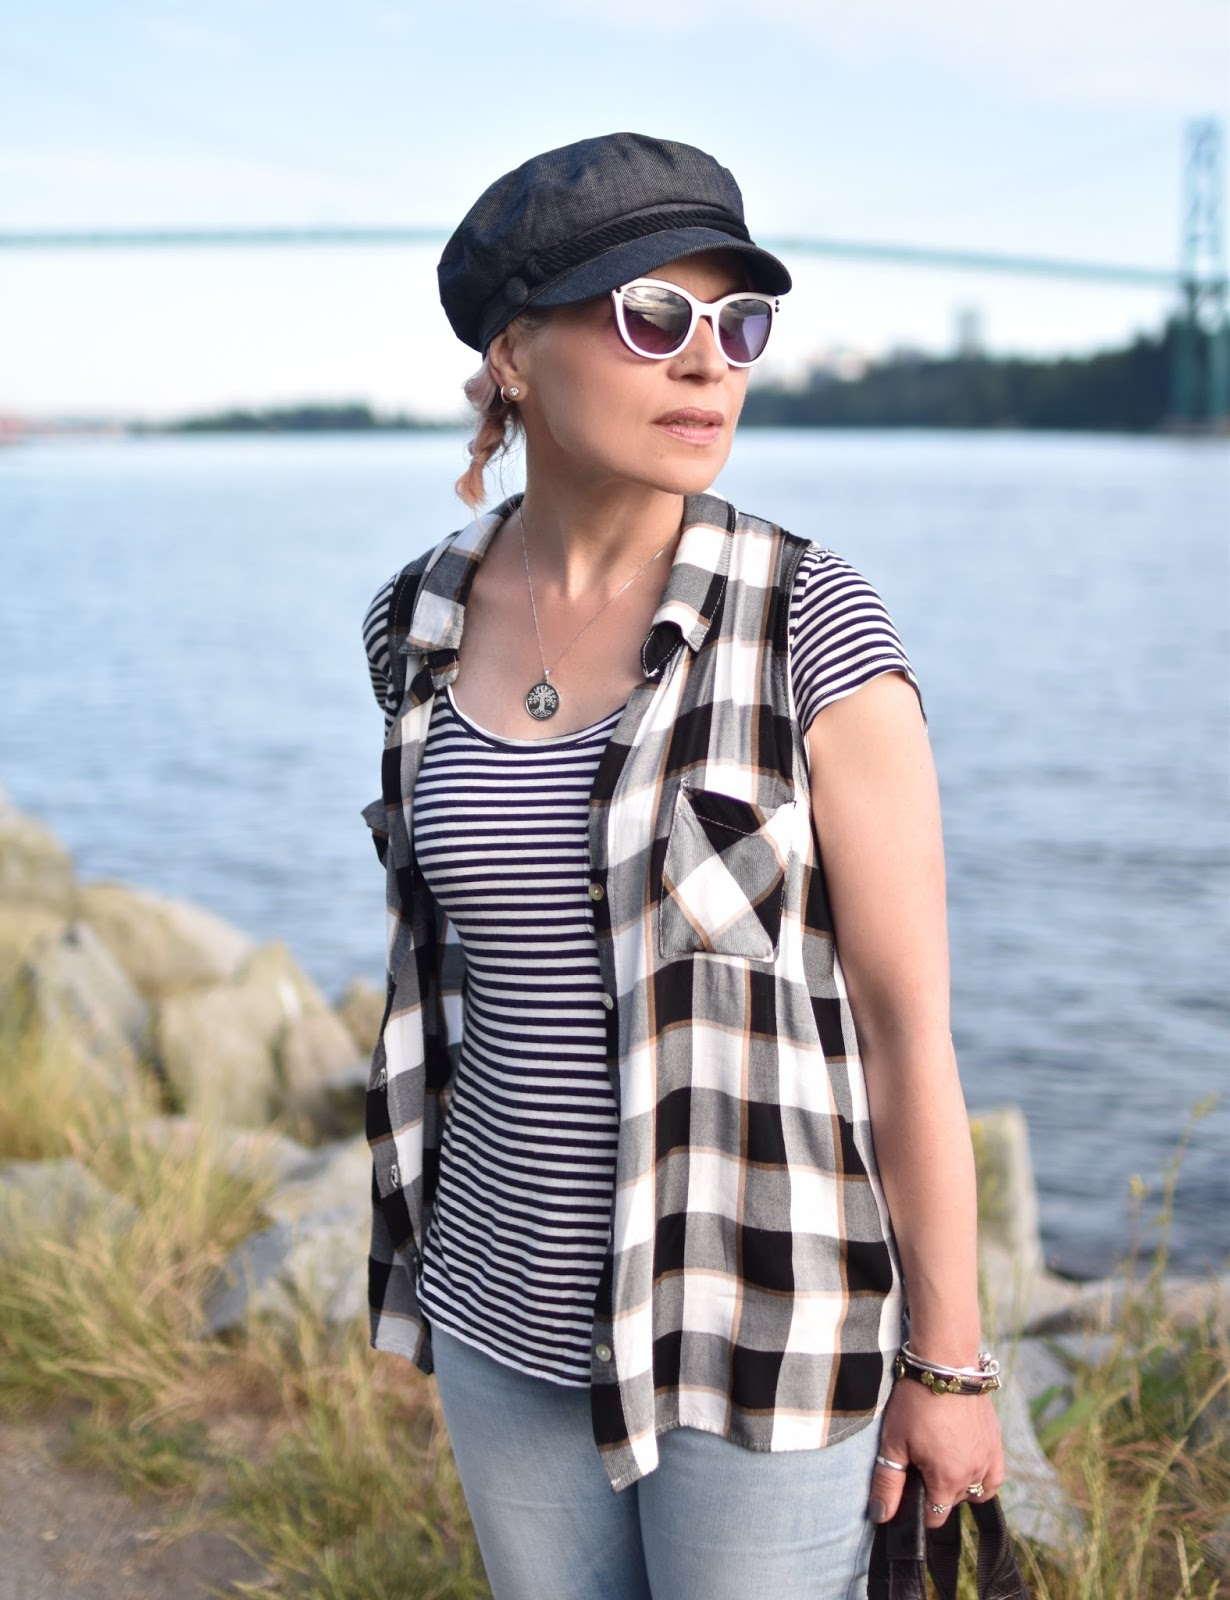 ec55d21093c72 City-zen  Layered striped and plaid tops with skinny jeans